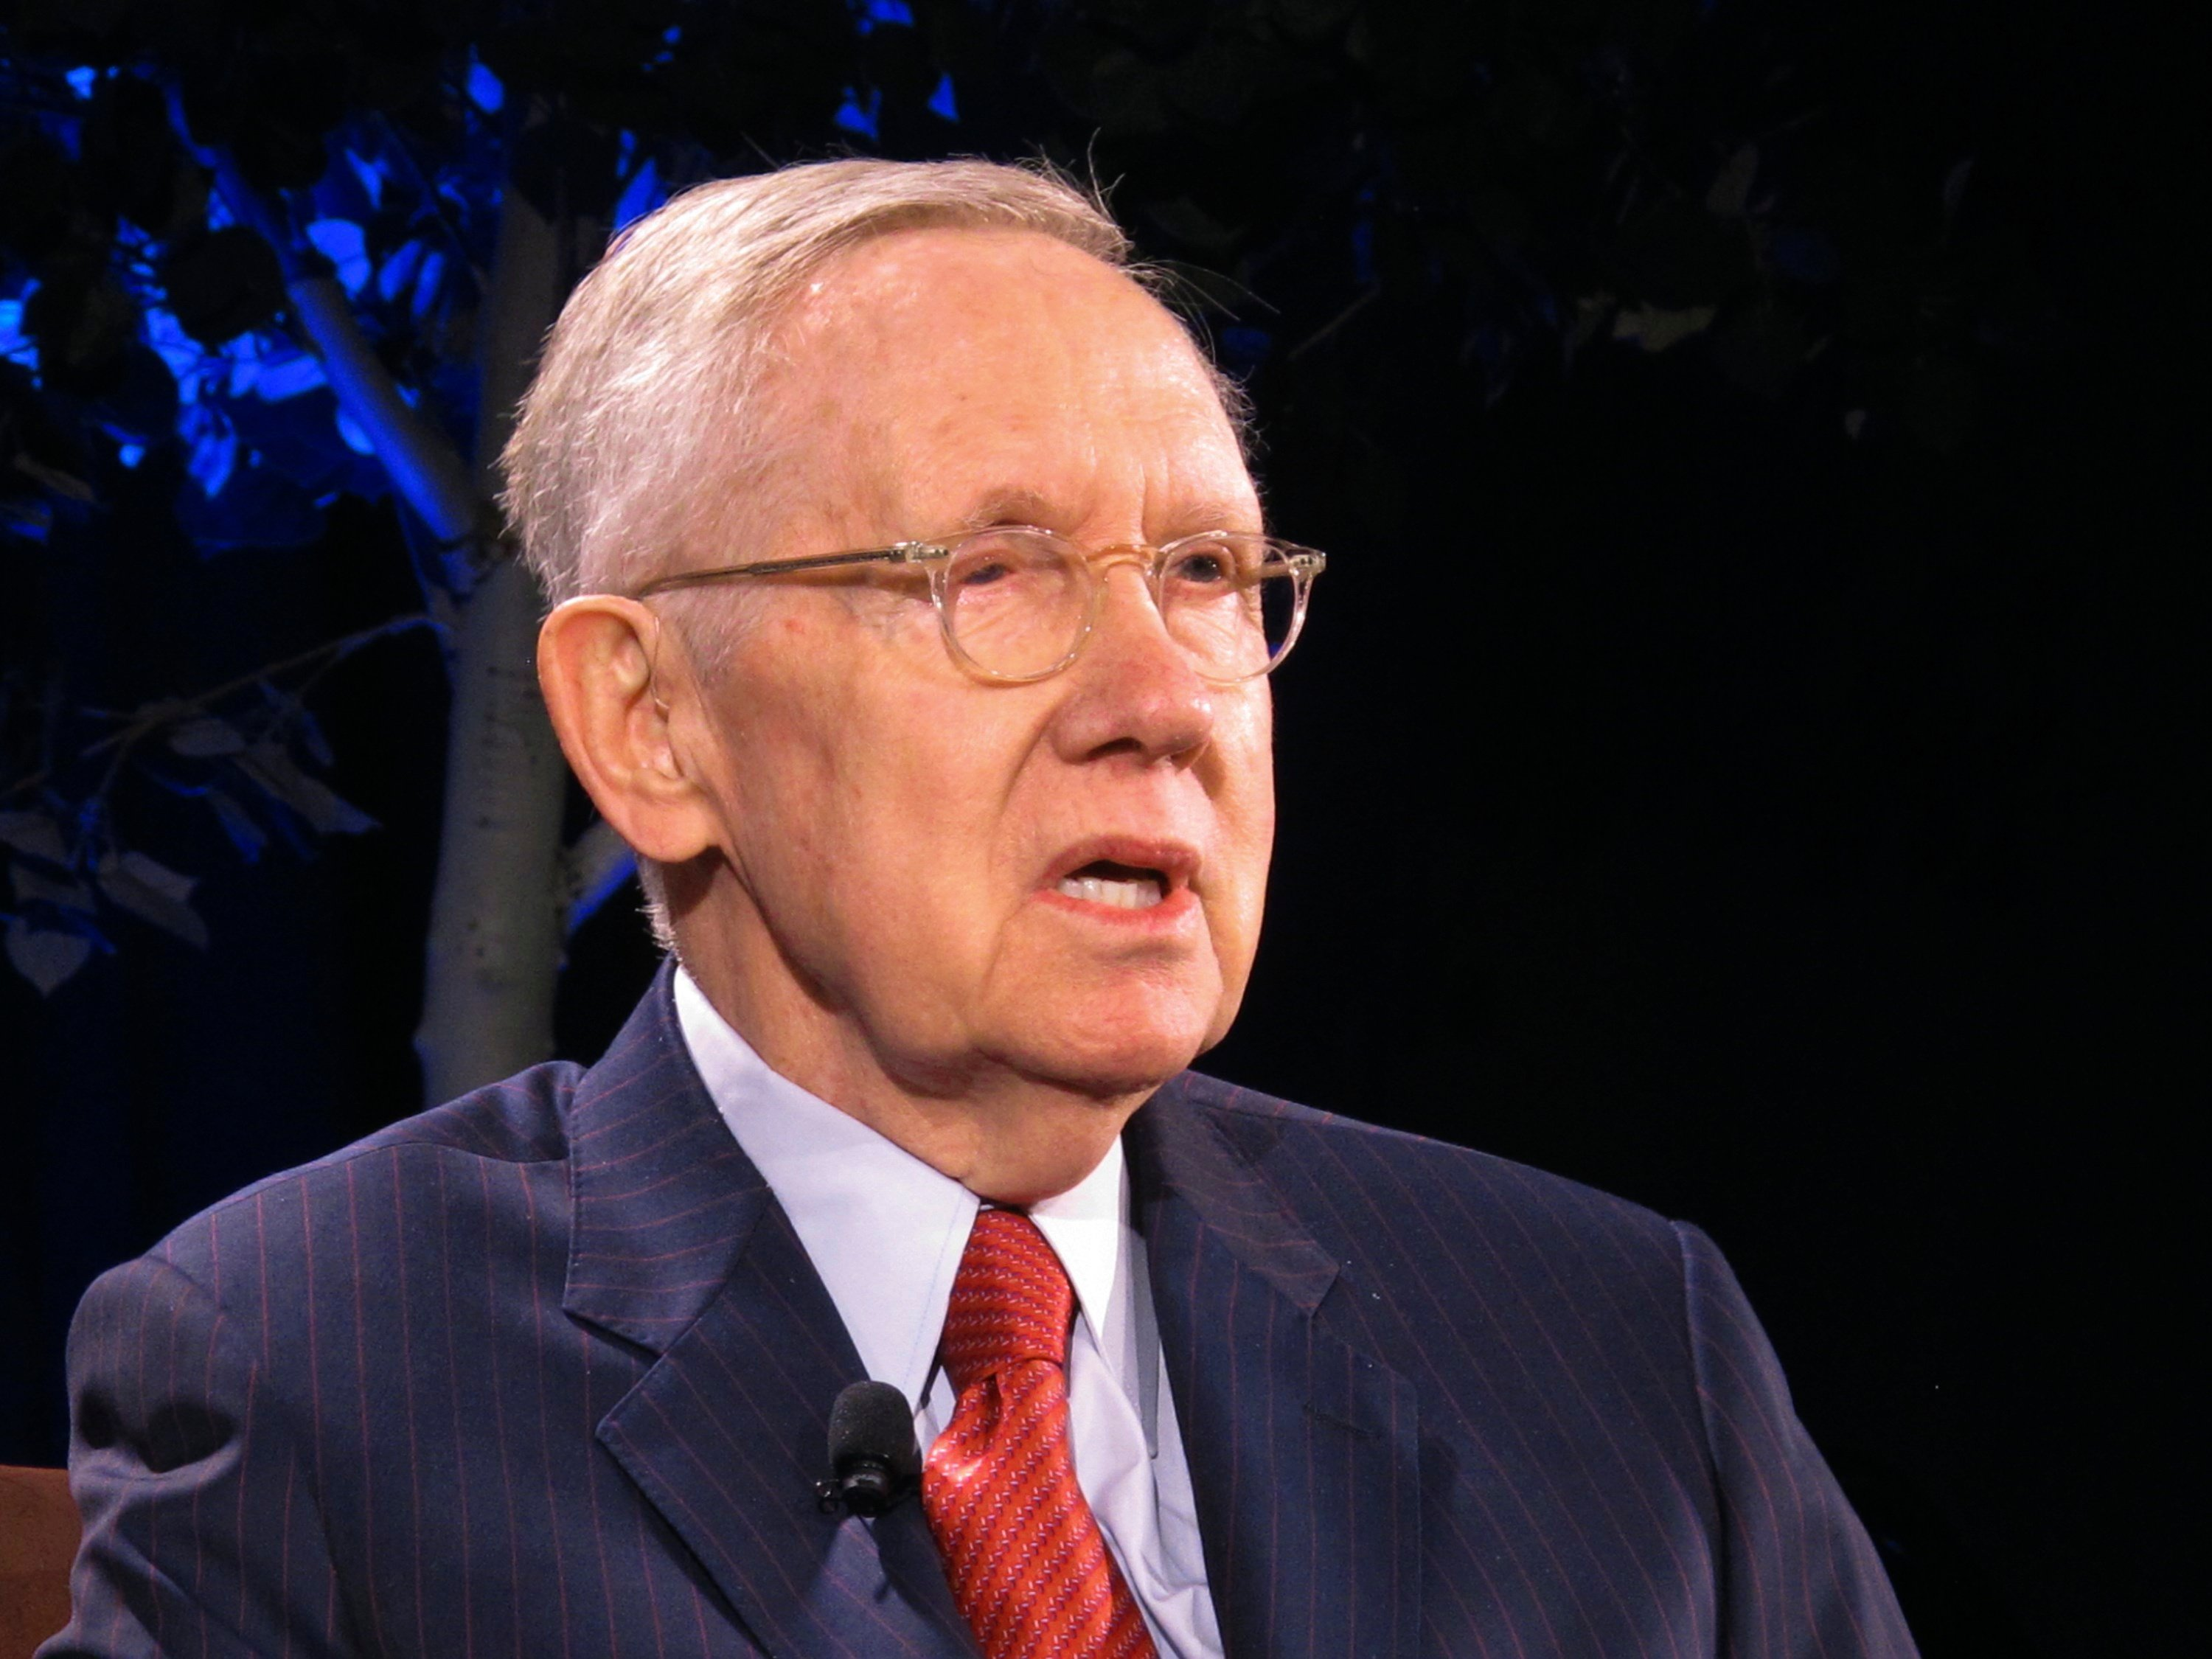 Former Senate Majority Leader Harry Reid has surgery for pancreatic cancer